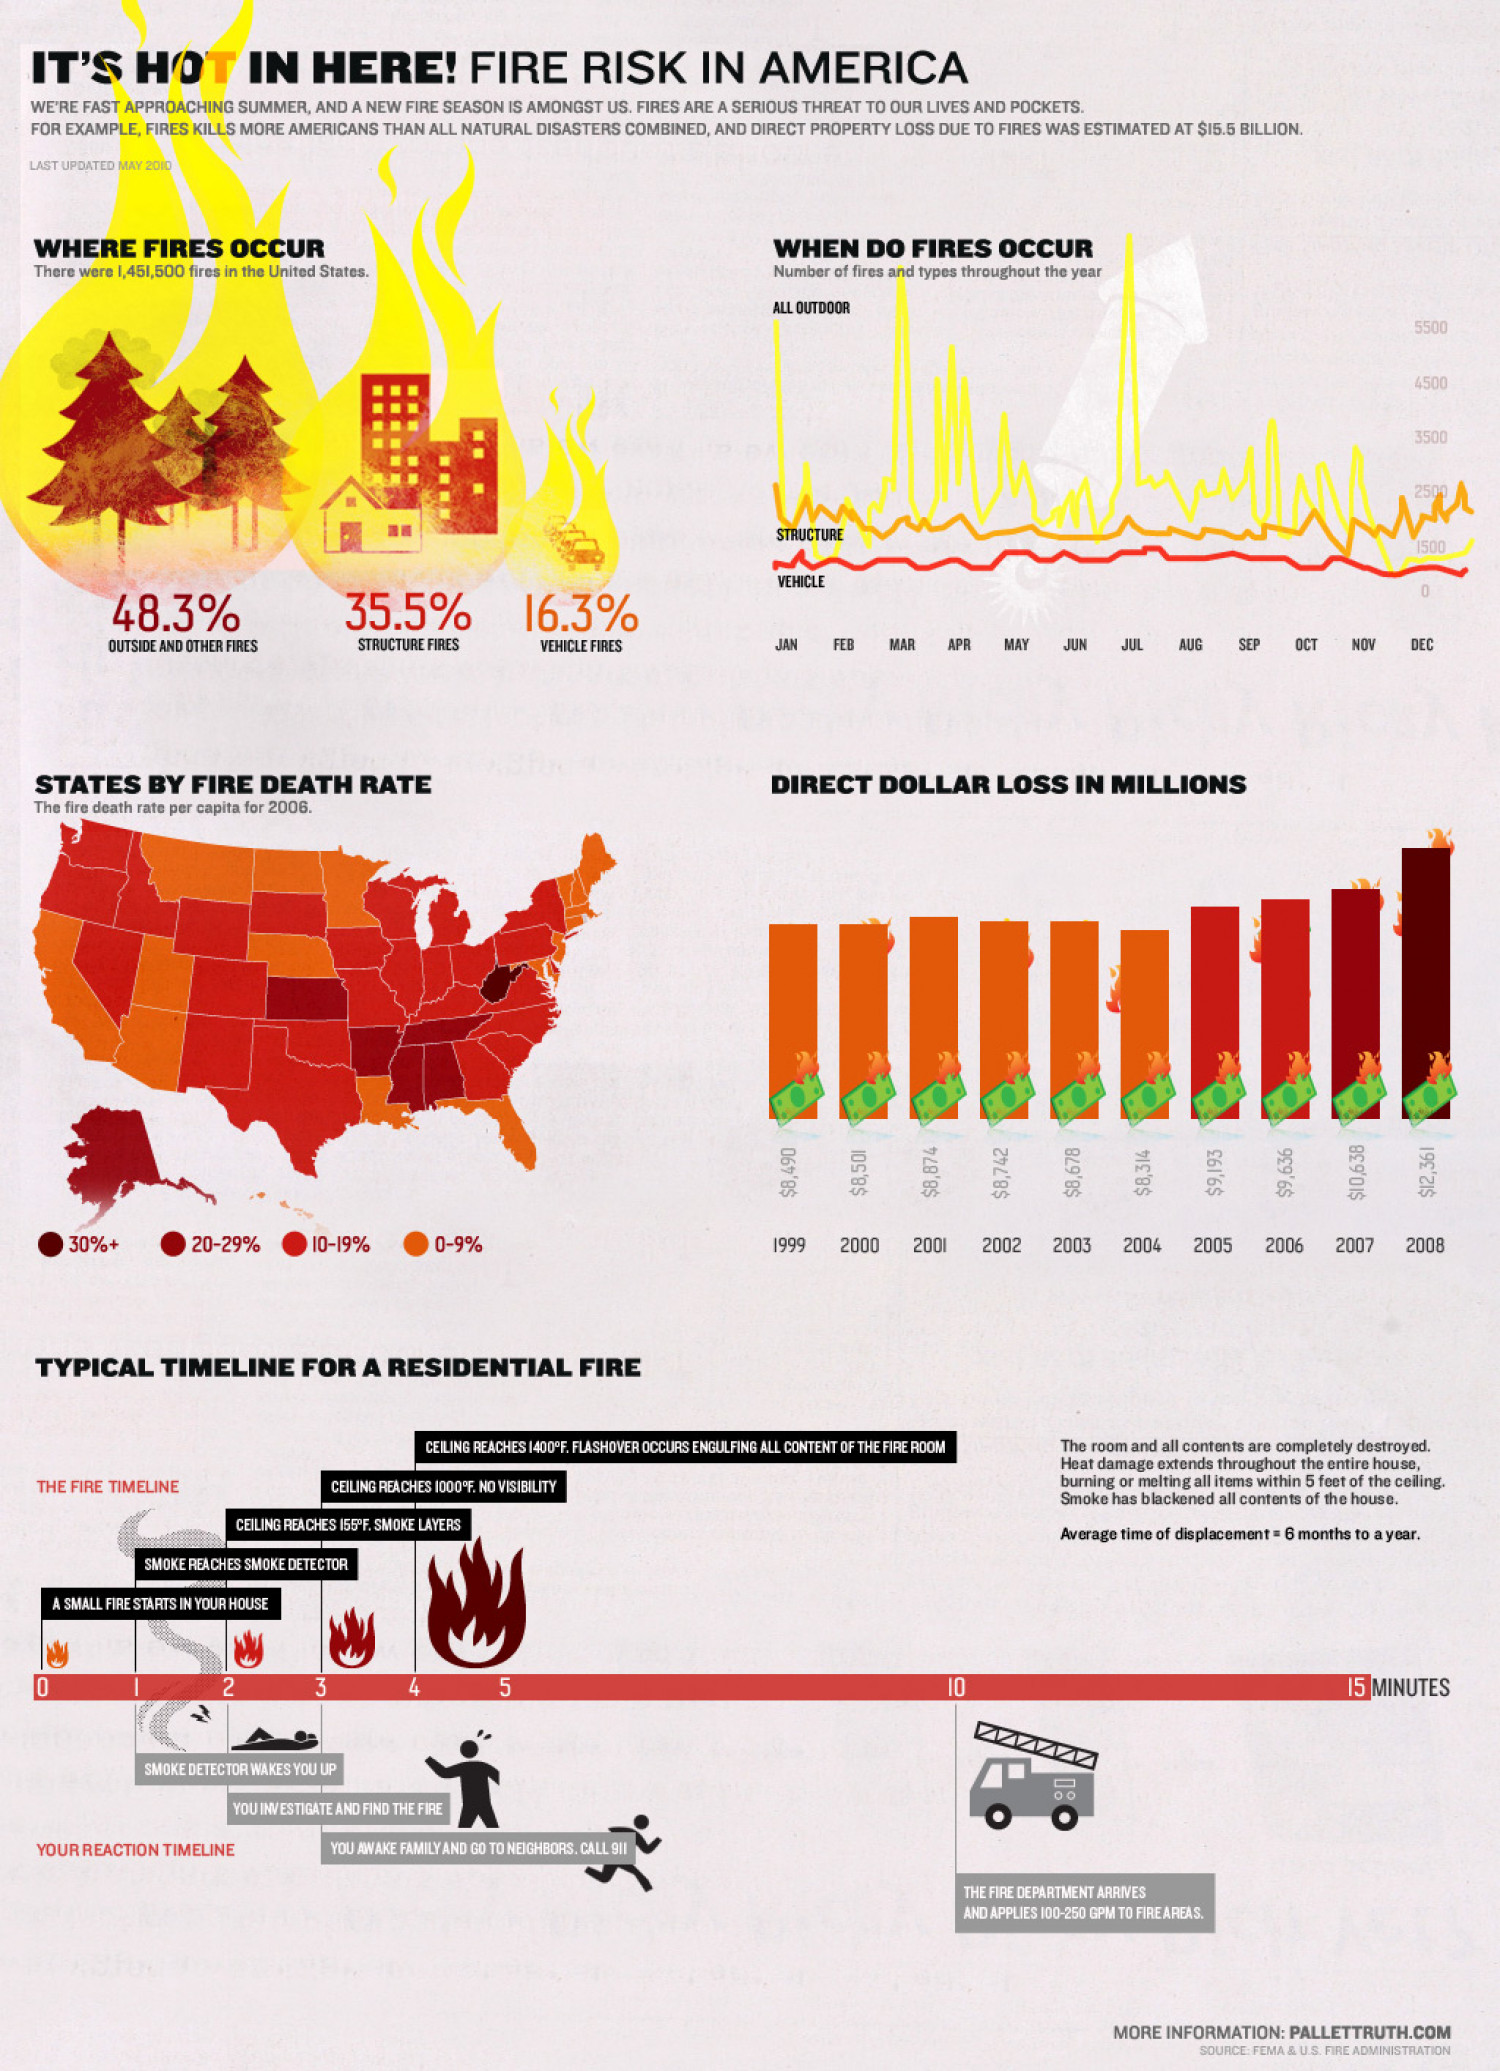 Fire Risk in America Infographic